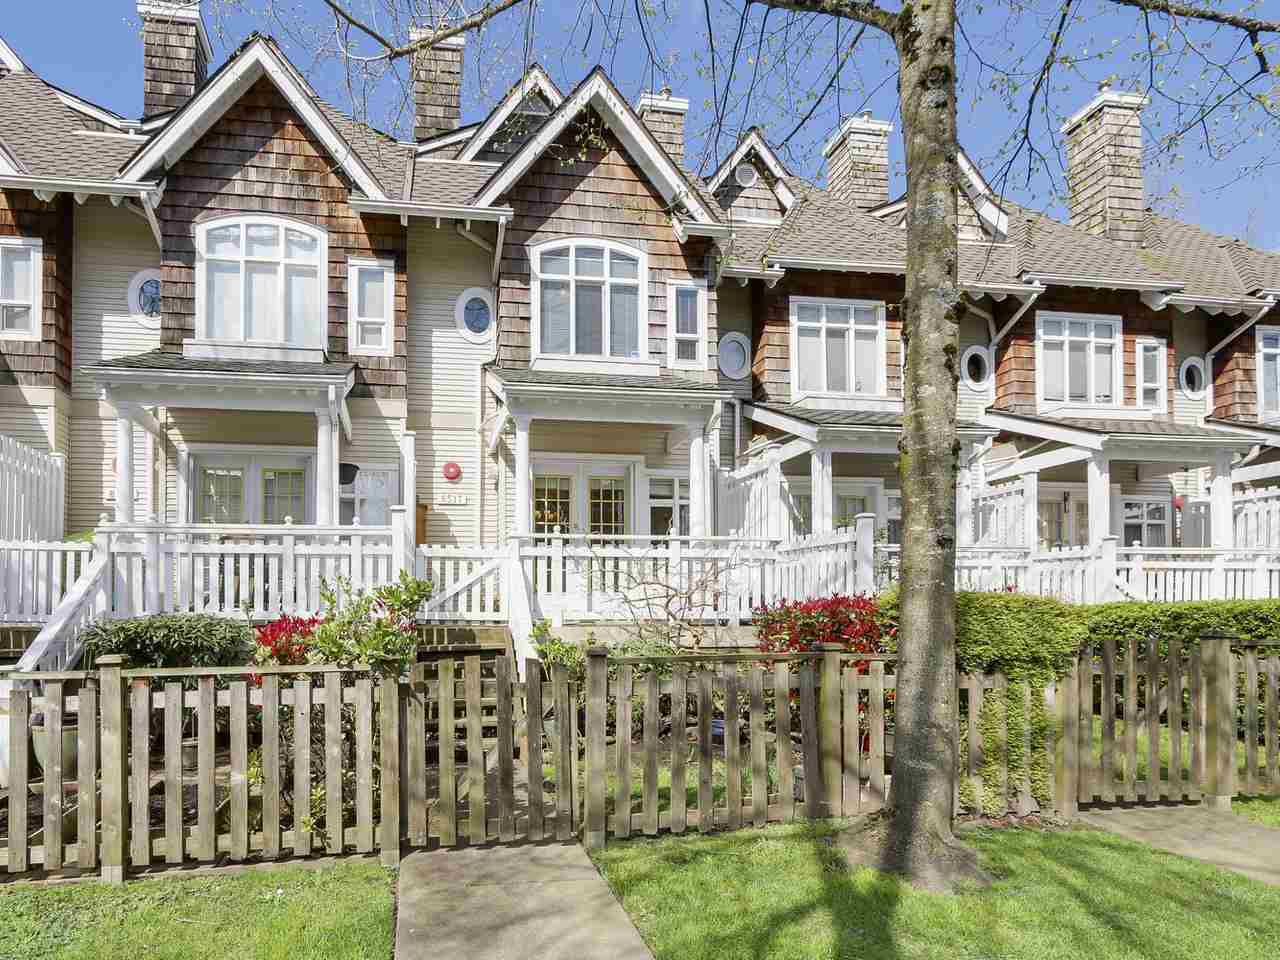 """Main Photo: 8517 JELLICOE Street in Vancouver: Fraserview VE Townhouse for sale in """"Lighthouse"""" (Vancouver East)  : MLS®# R2178712"""